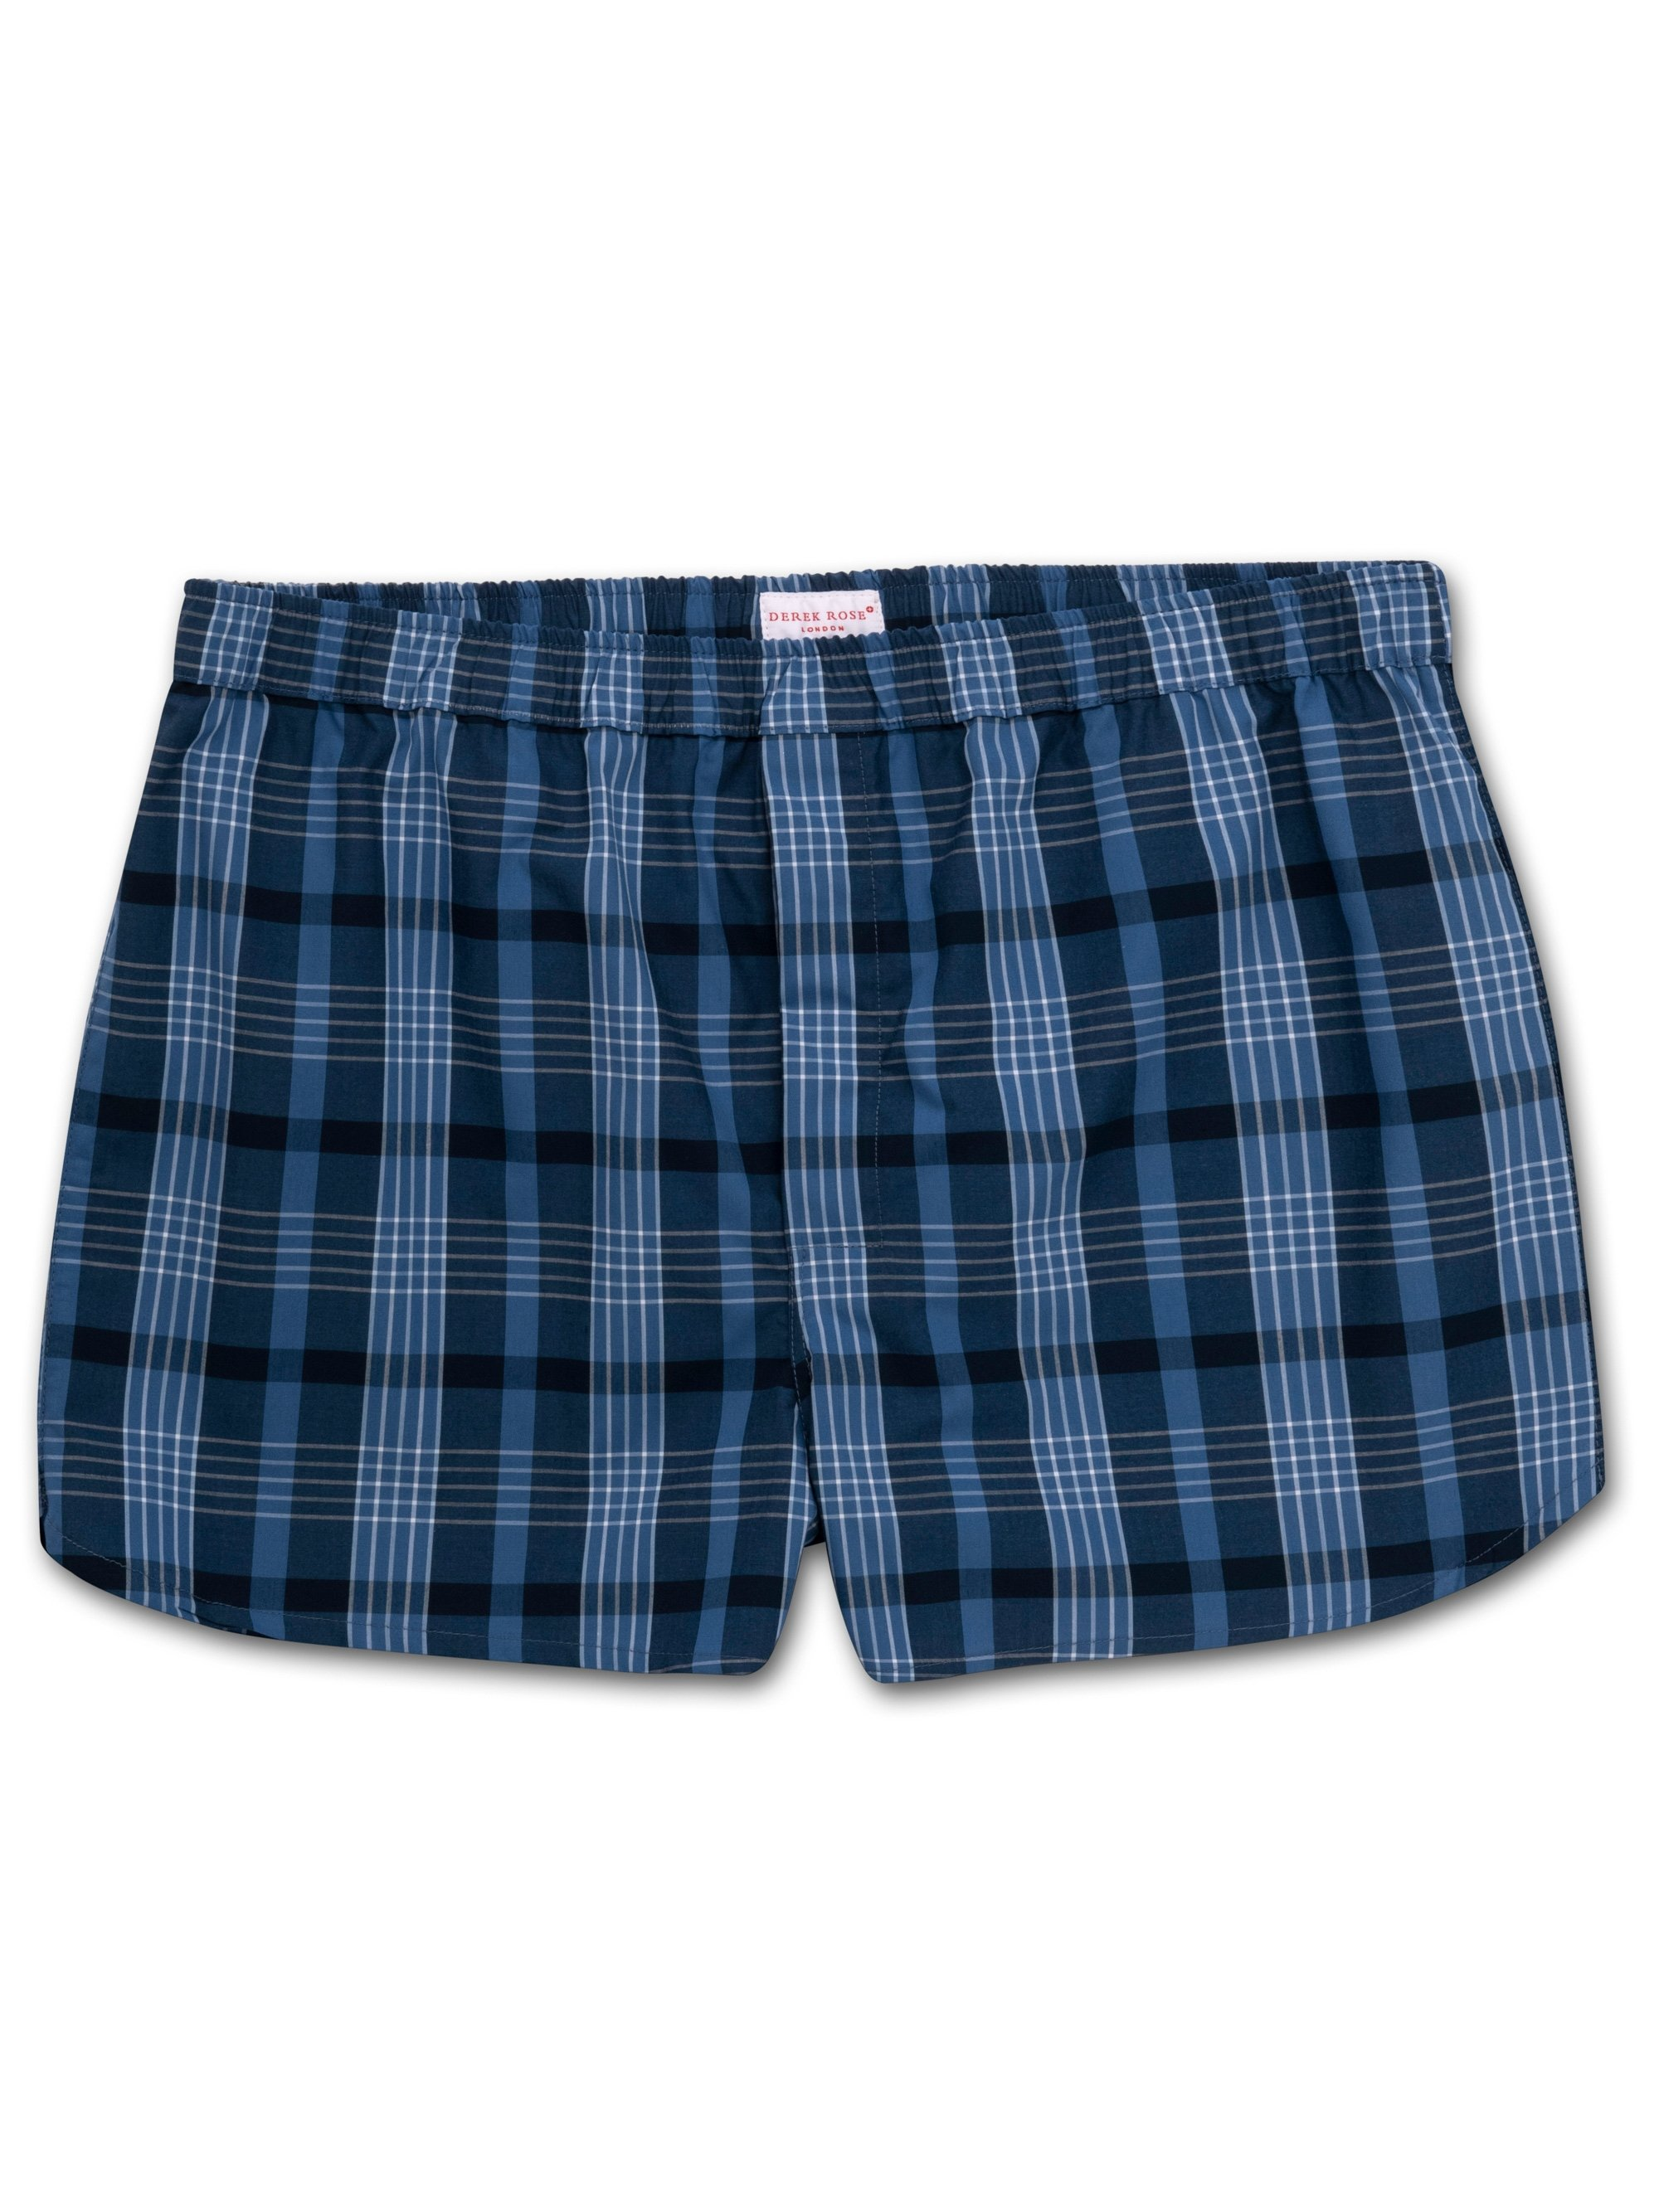 Men's Modern Fit Boxer Shorts Barker 28 Cotton Check Blue